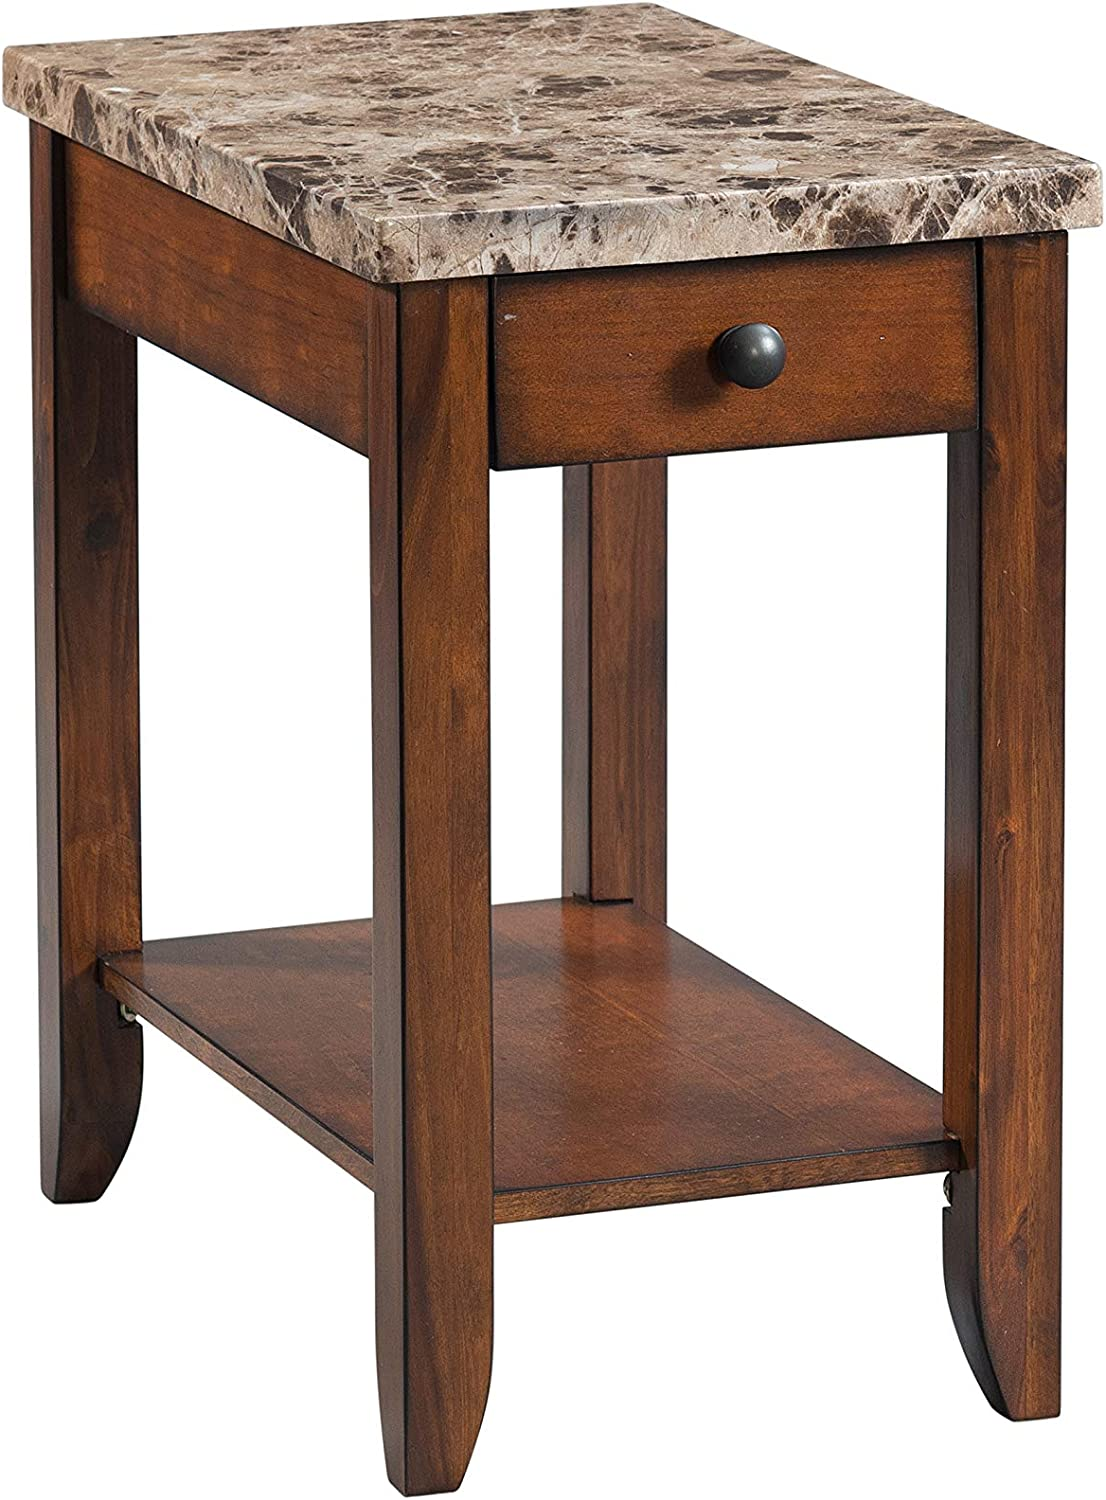 Lane Home Furnishings Chairside Table - Power, Lift-Top Cocktail, Brown